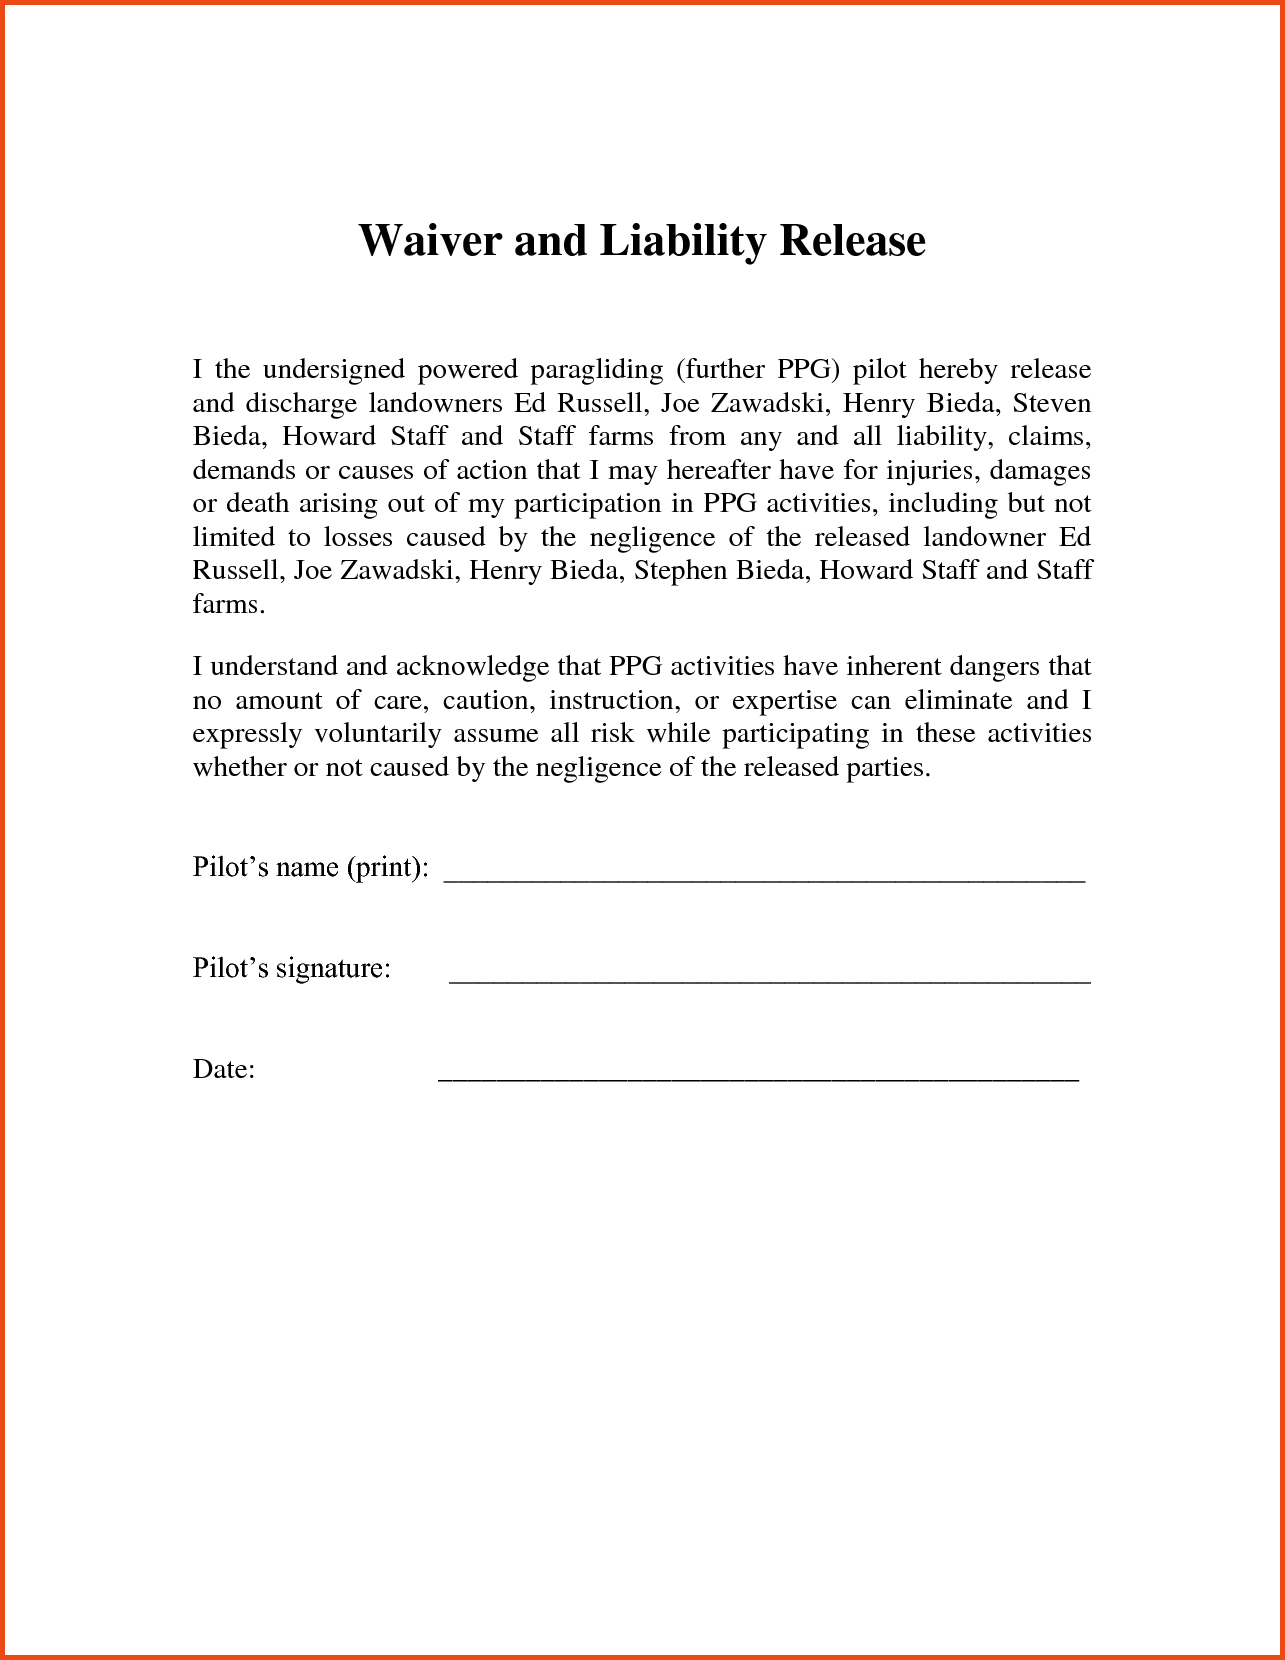 letter of release template example-Release Liability form Template Best Signed Waiver form Lovely Landowner Agreement 0d Rosheruns – 4-e